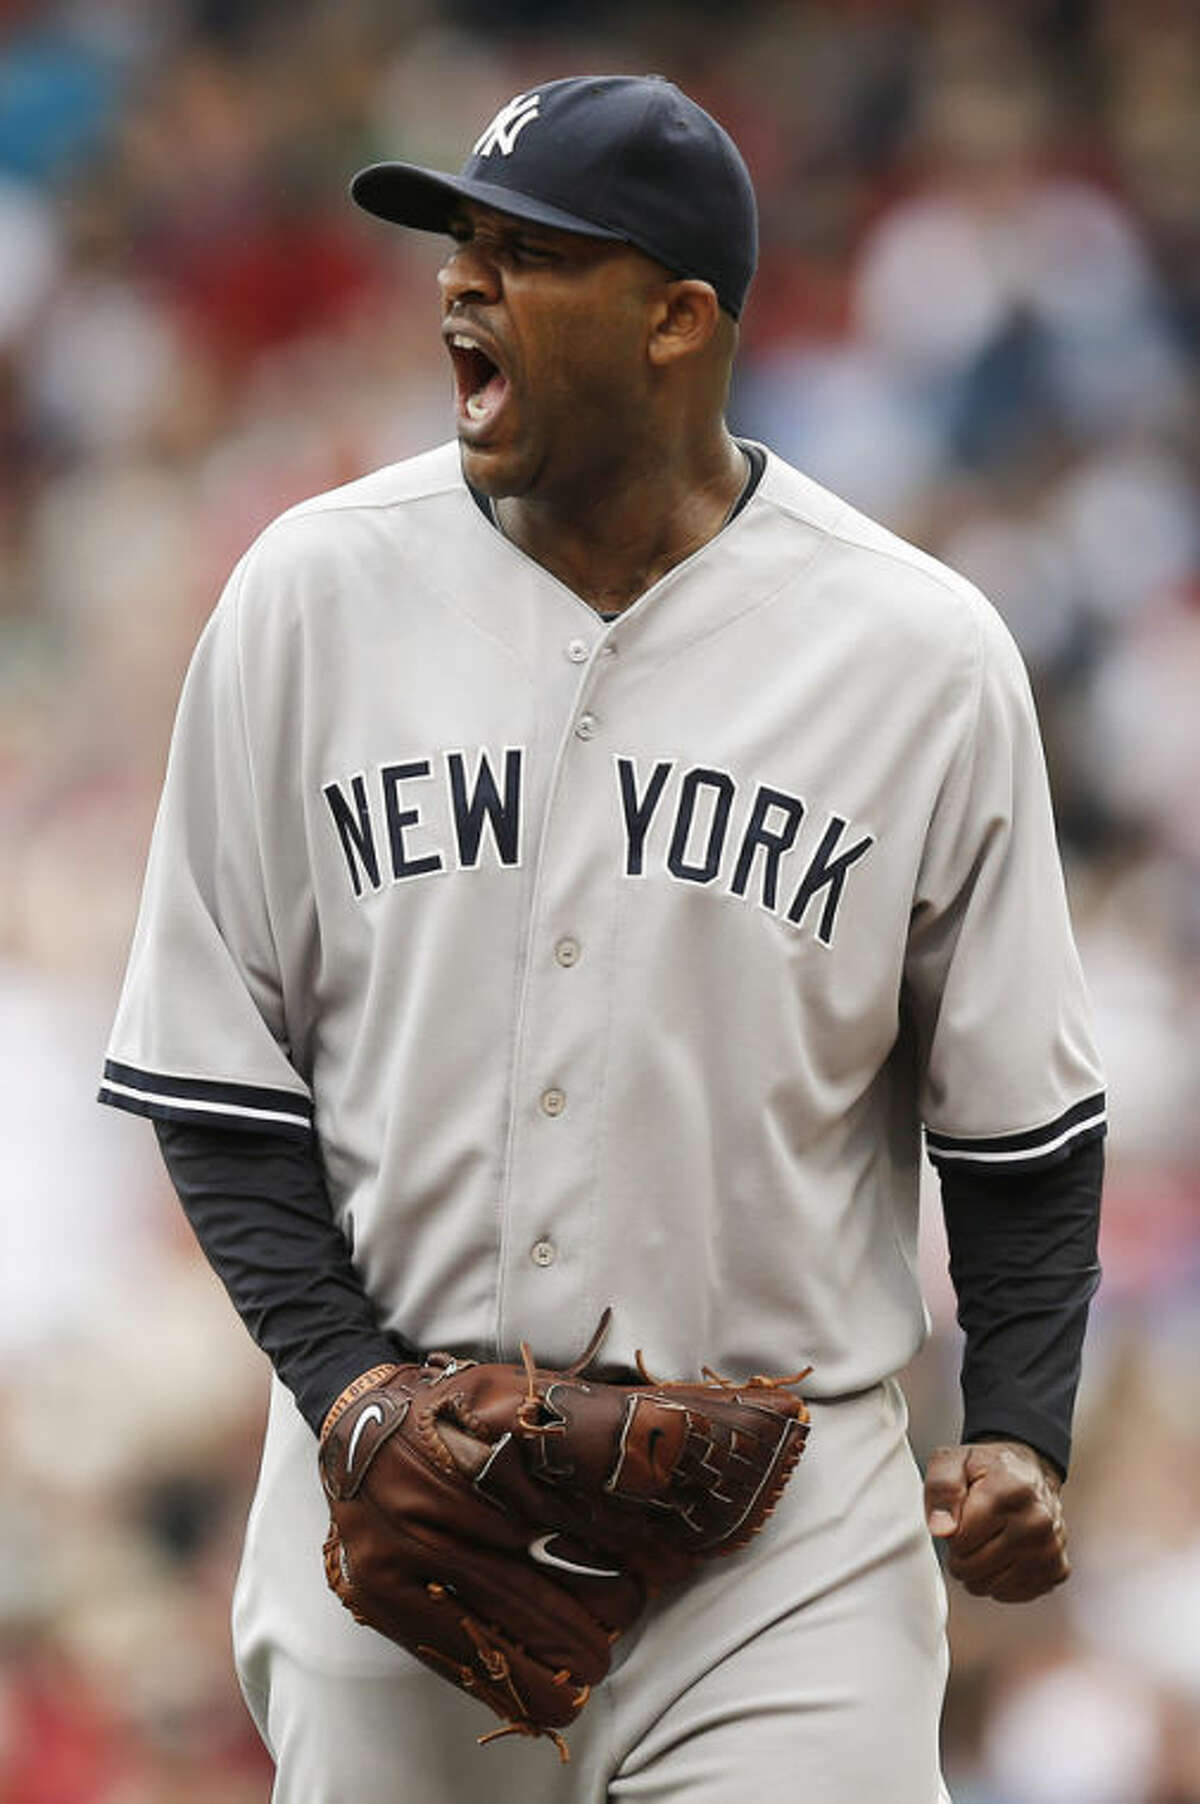 New York Yankees starting pitcher CC Sabathia shouts out while leaving the mound after giving up a run to the Boston Red Sox during the fourth inning of a baseball game at Fenway Park in Boston Saturday, Sept. 14, 2013. (AP Photo/Winslow Townson)